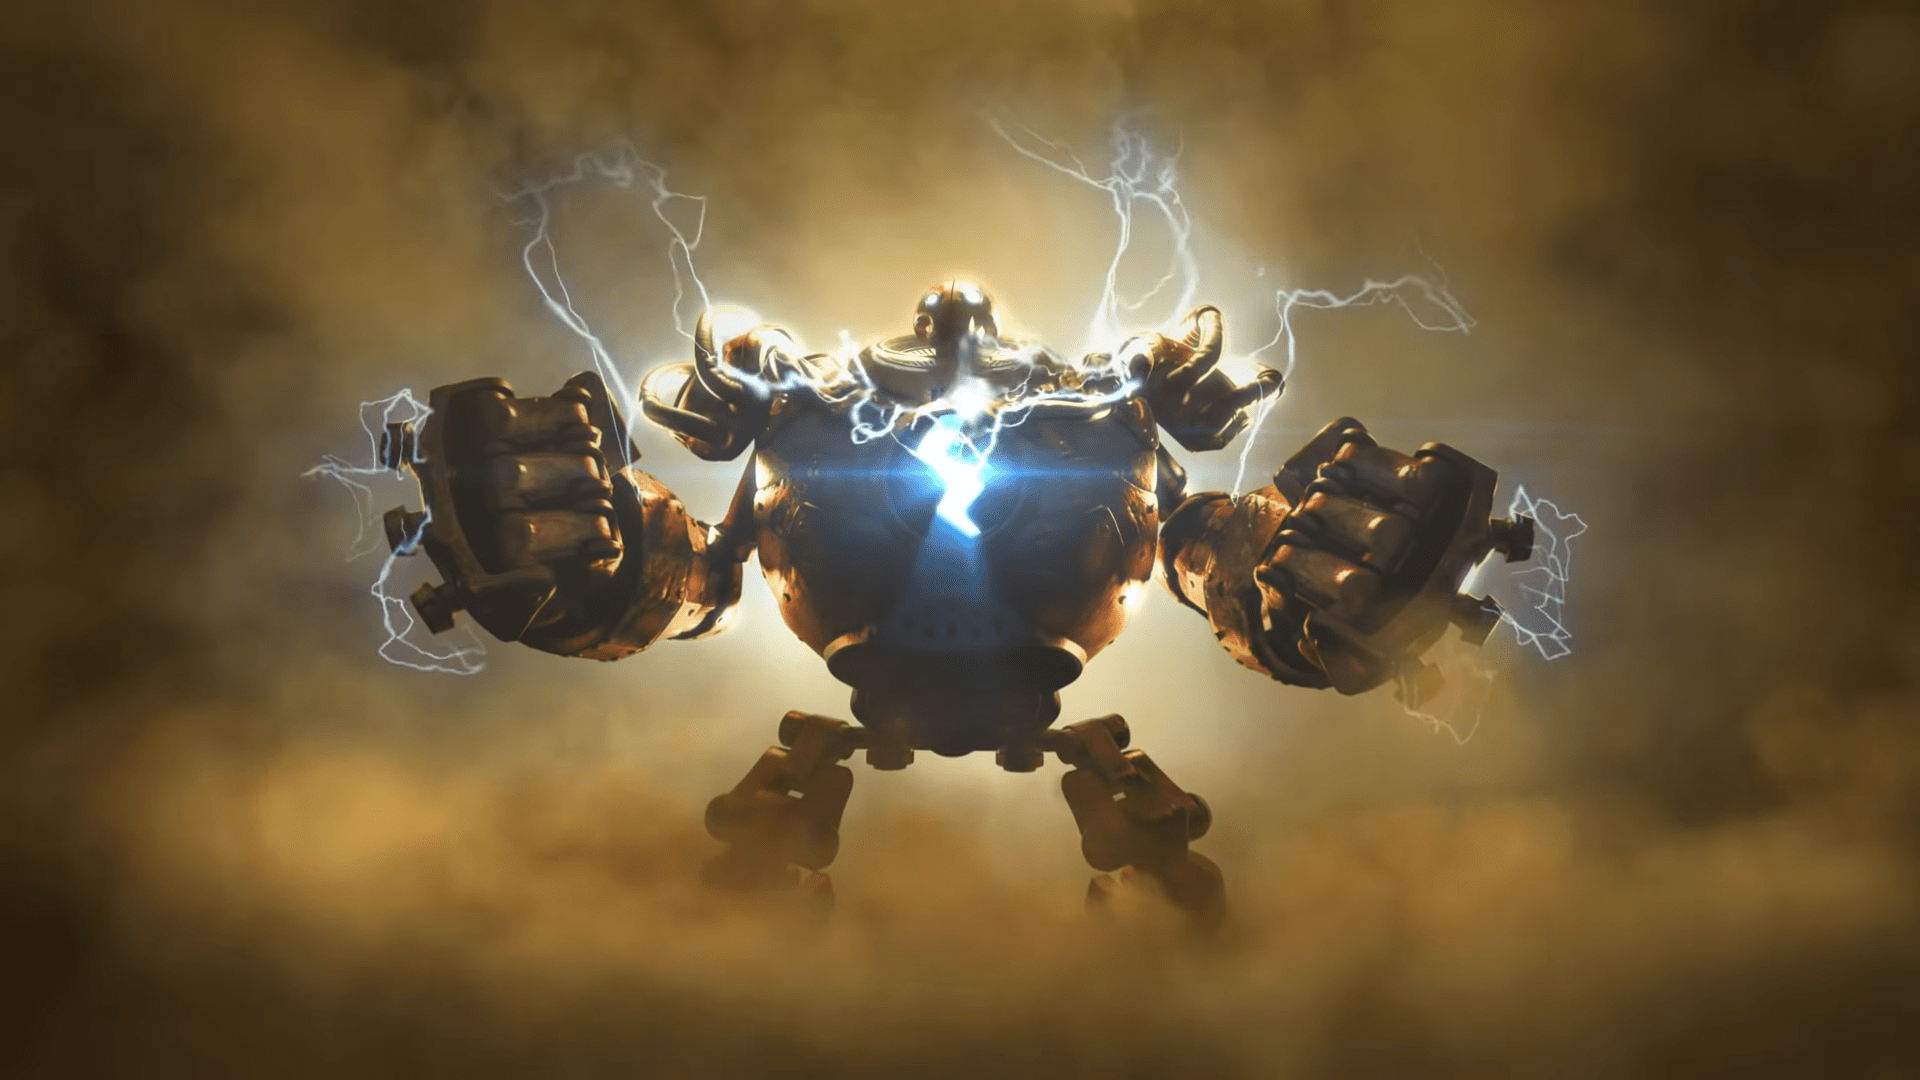 League Of Legends Reveals New Chess-Style Game Mode – Teamfight Tactics